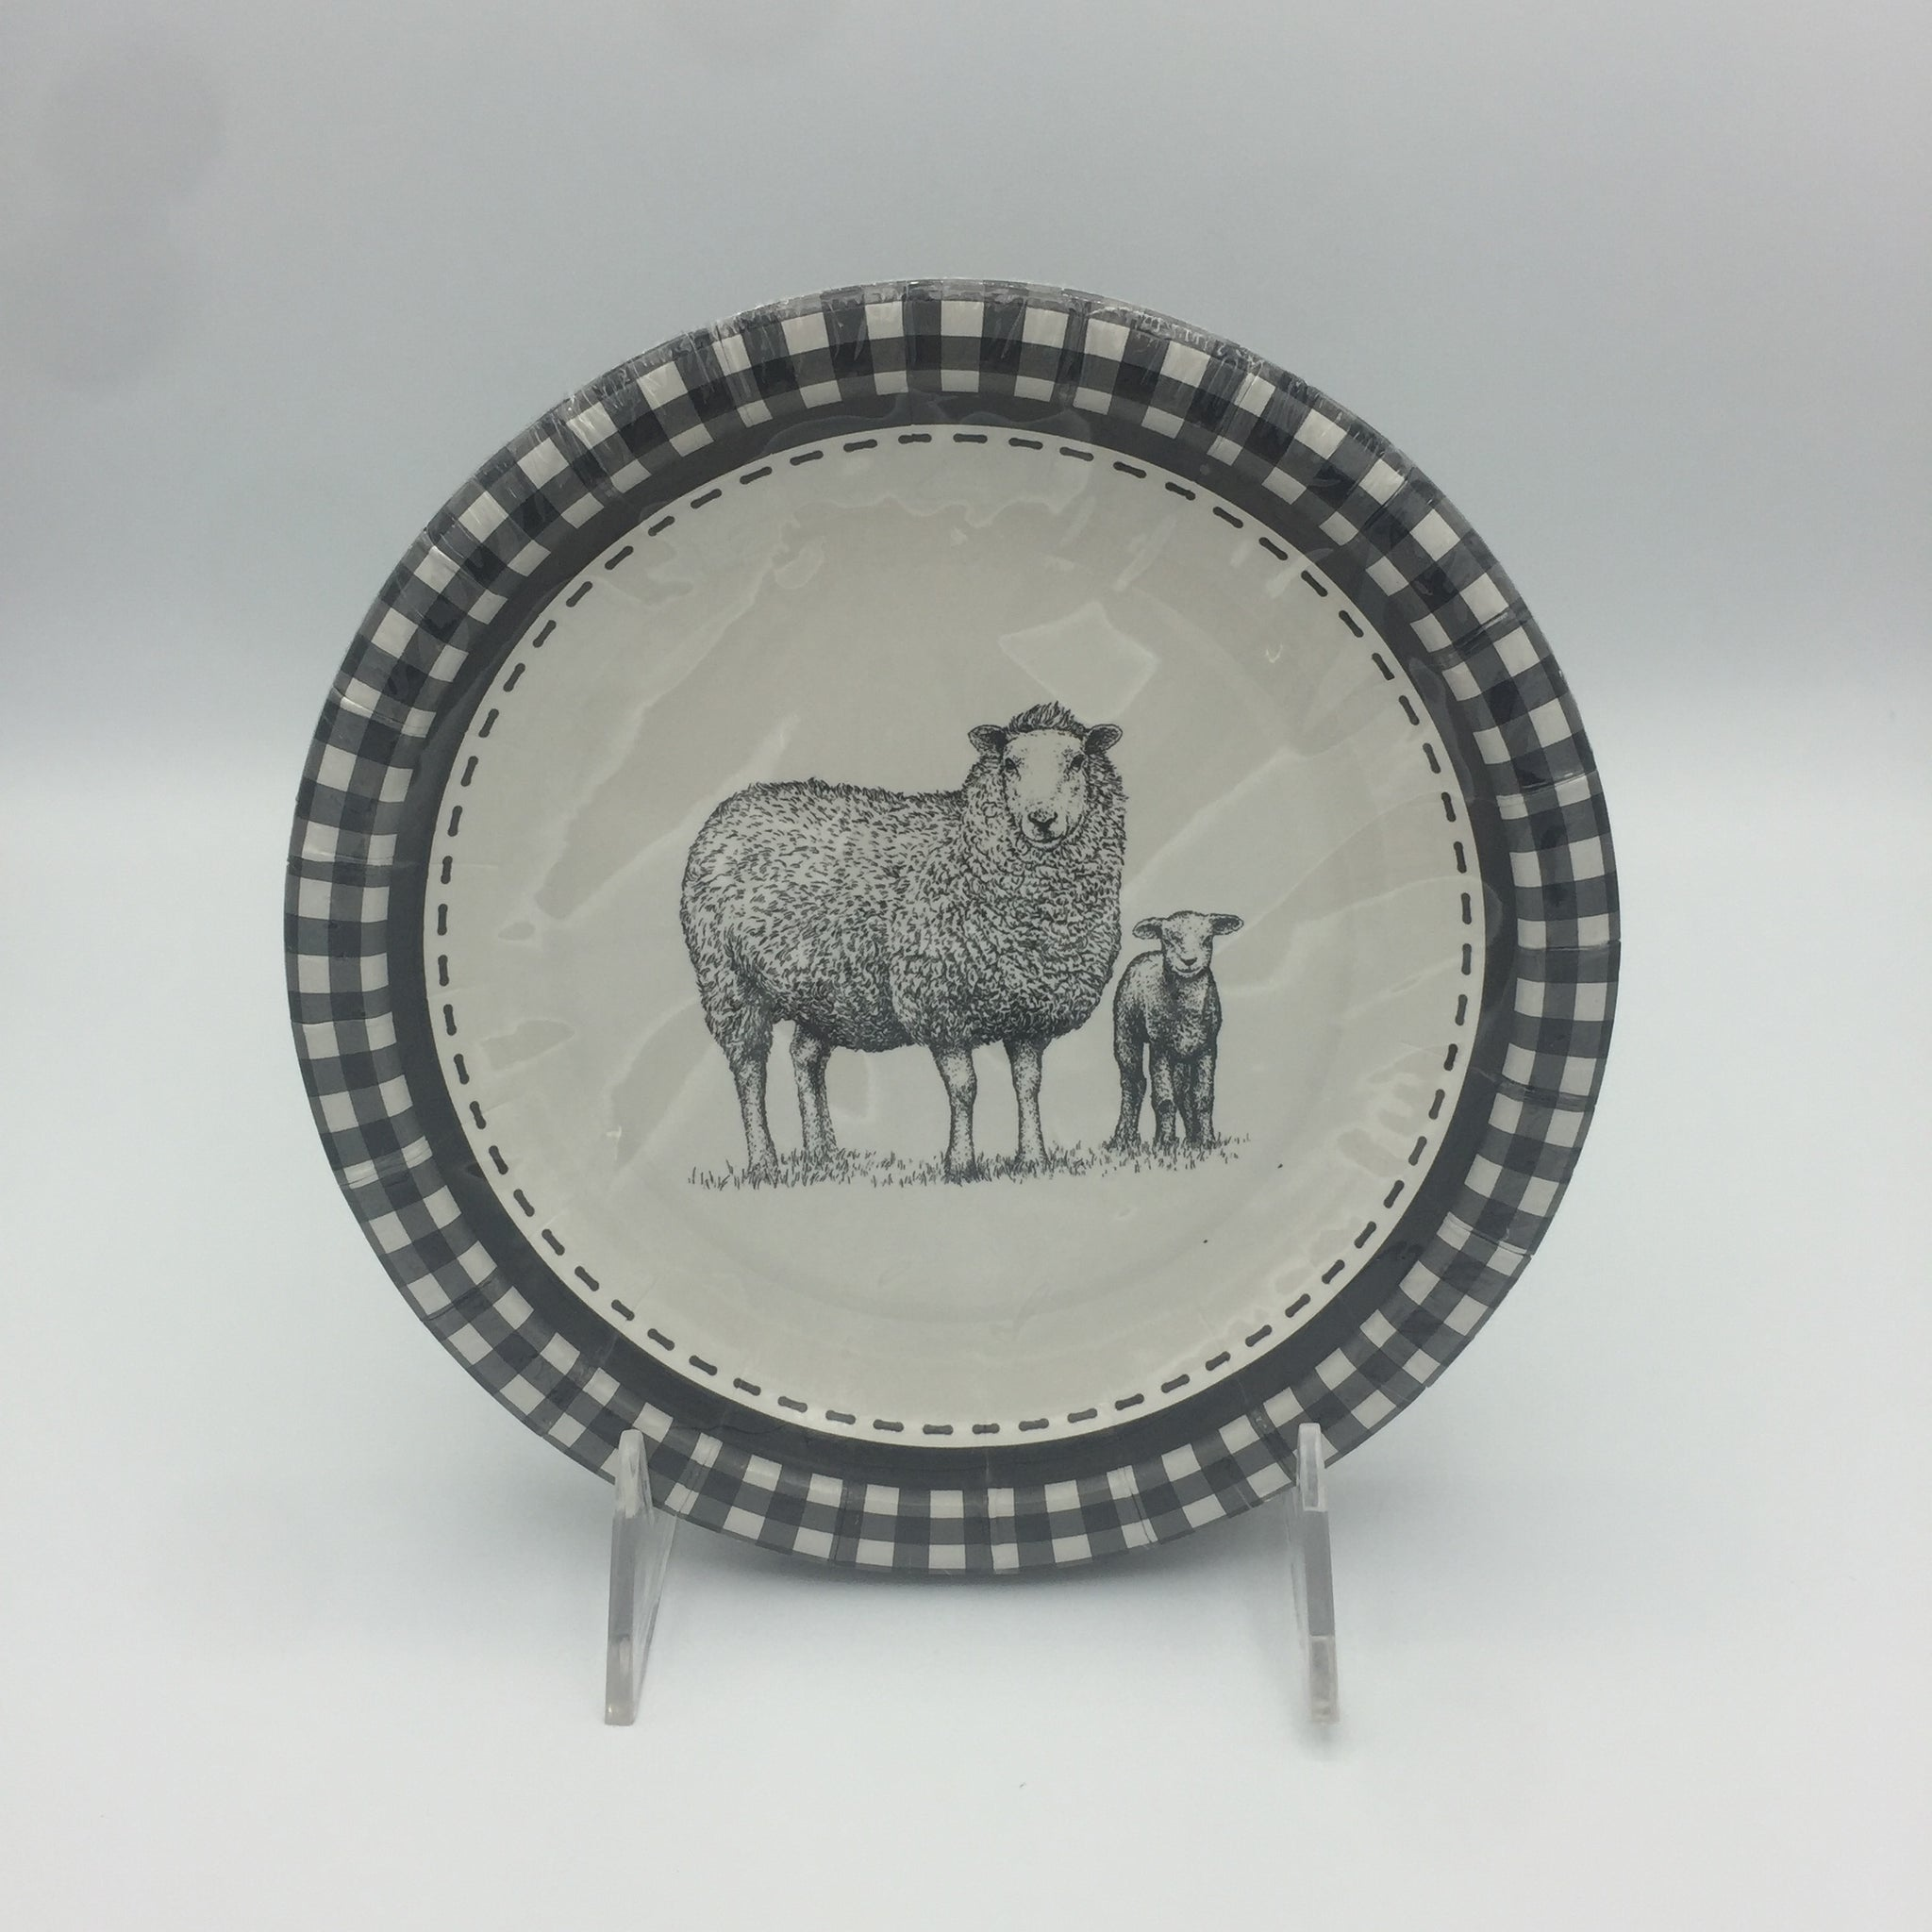 Black & White Sheep Pattern Dessert/Salad Plate